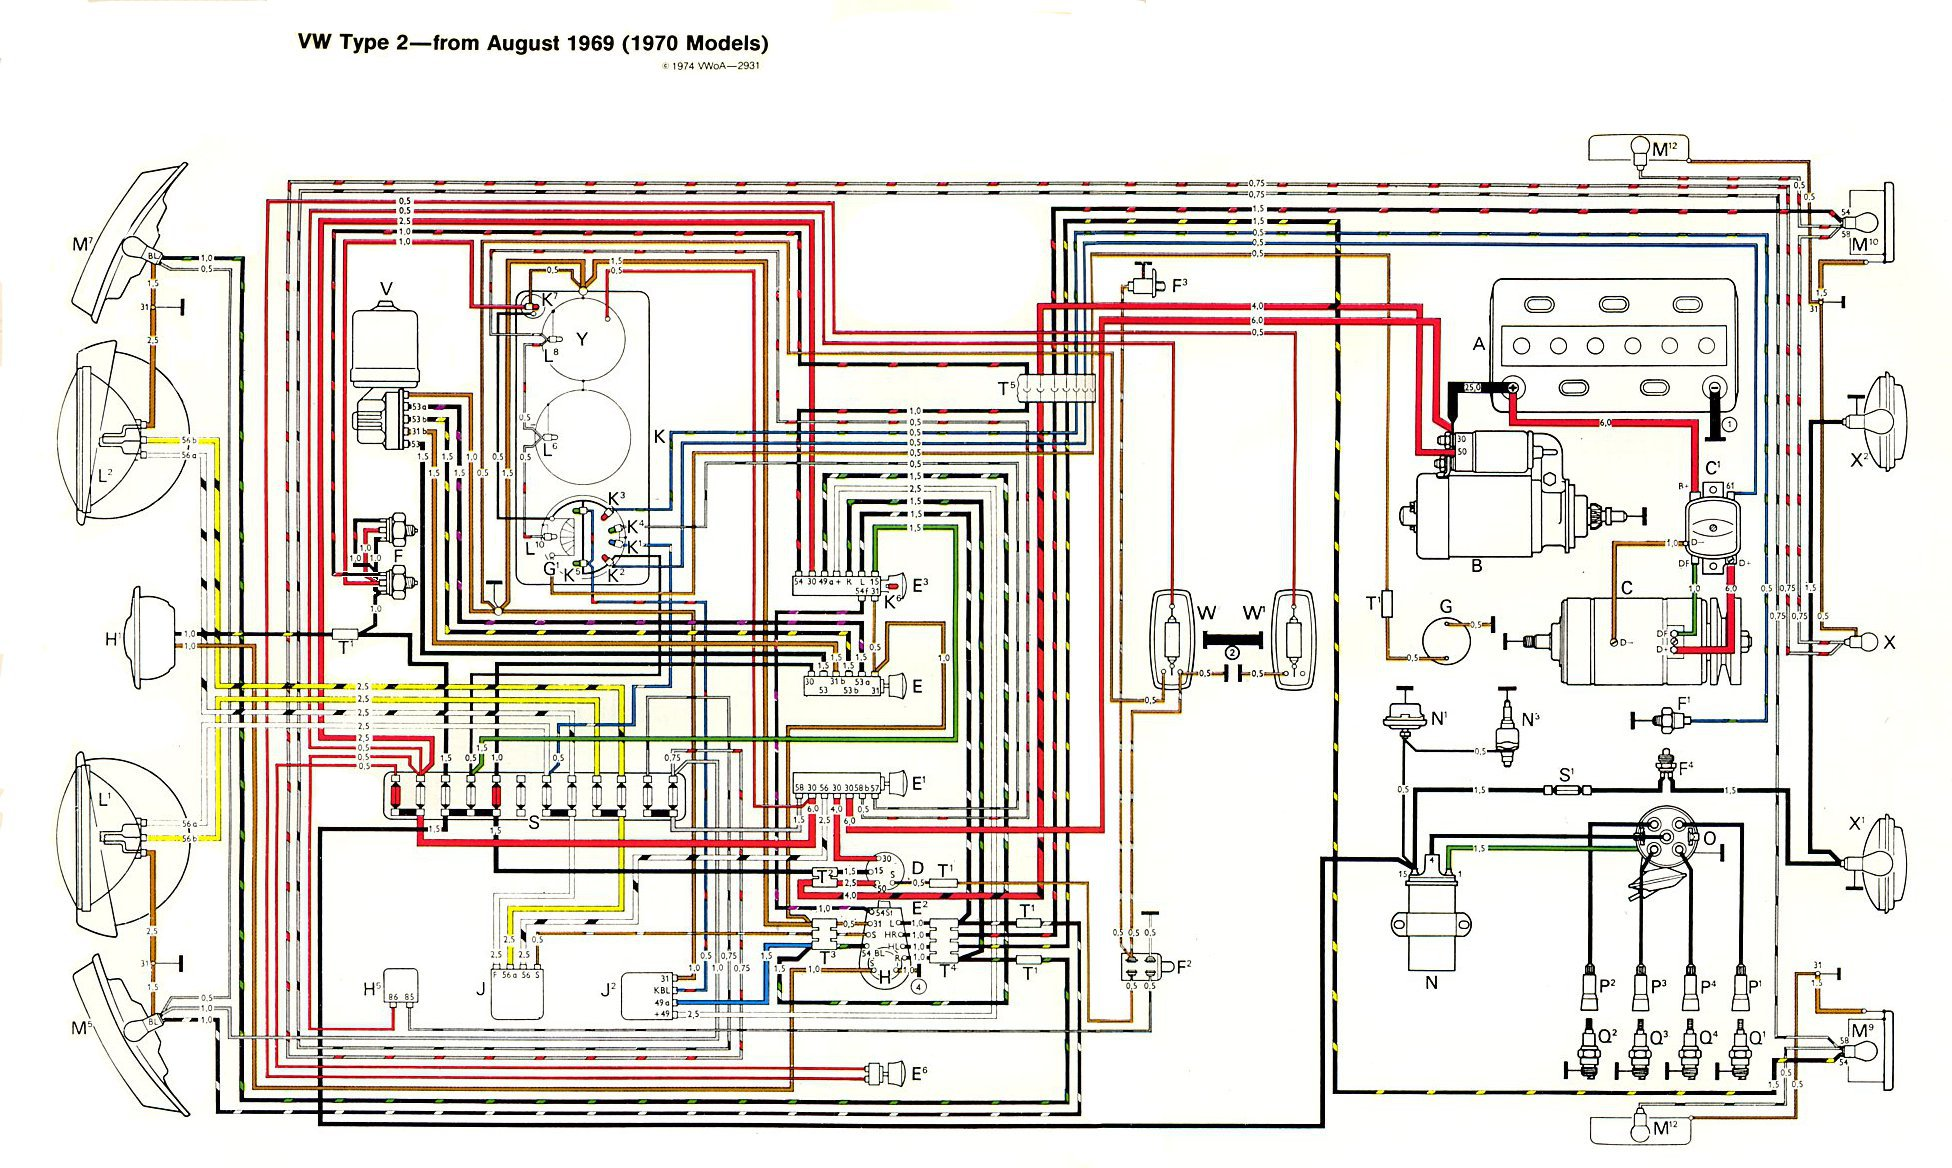 baybus_70 thesamba com type 2 wiring diagrams 1971 vw bus wiring diagram at bayanpartner.co